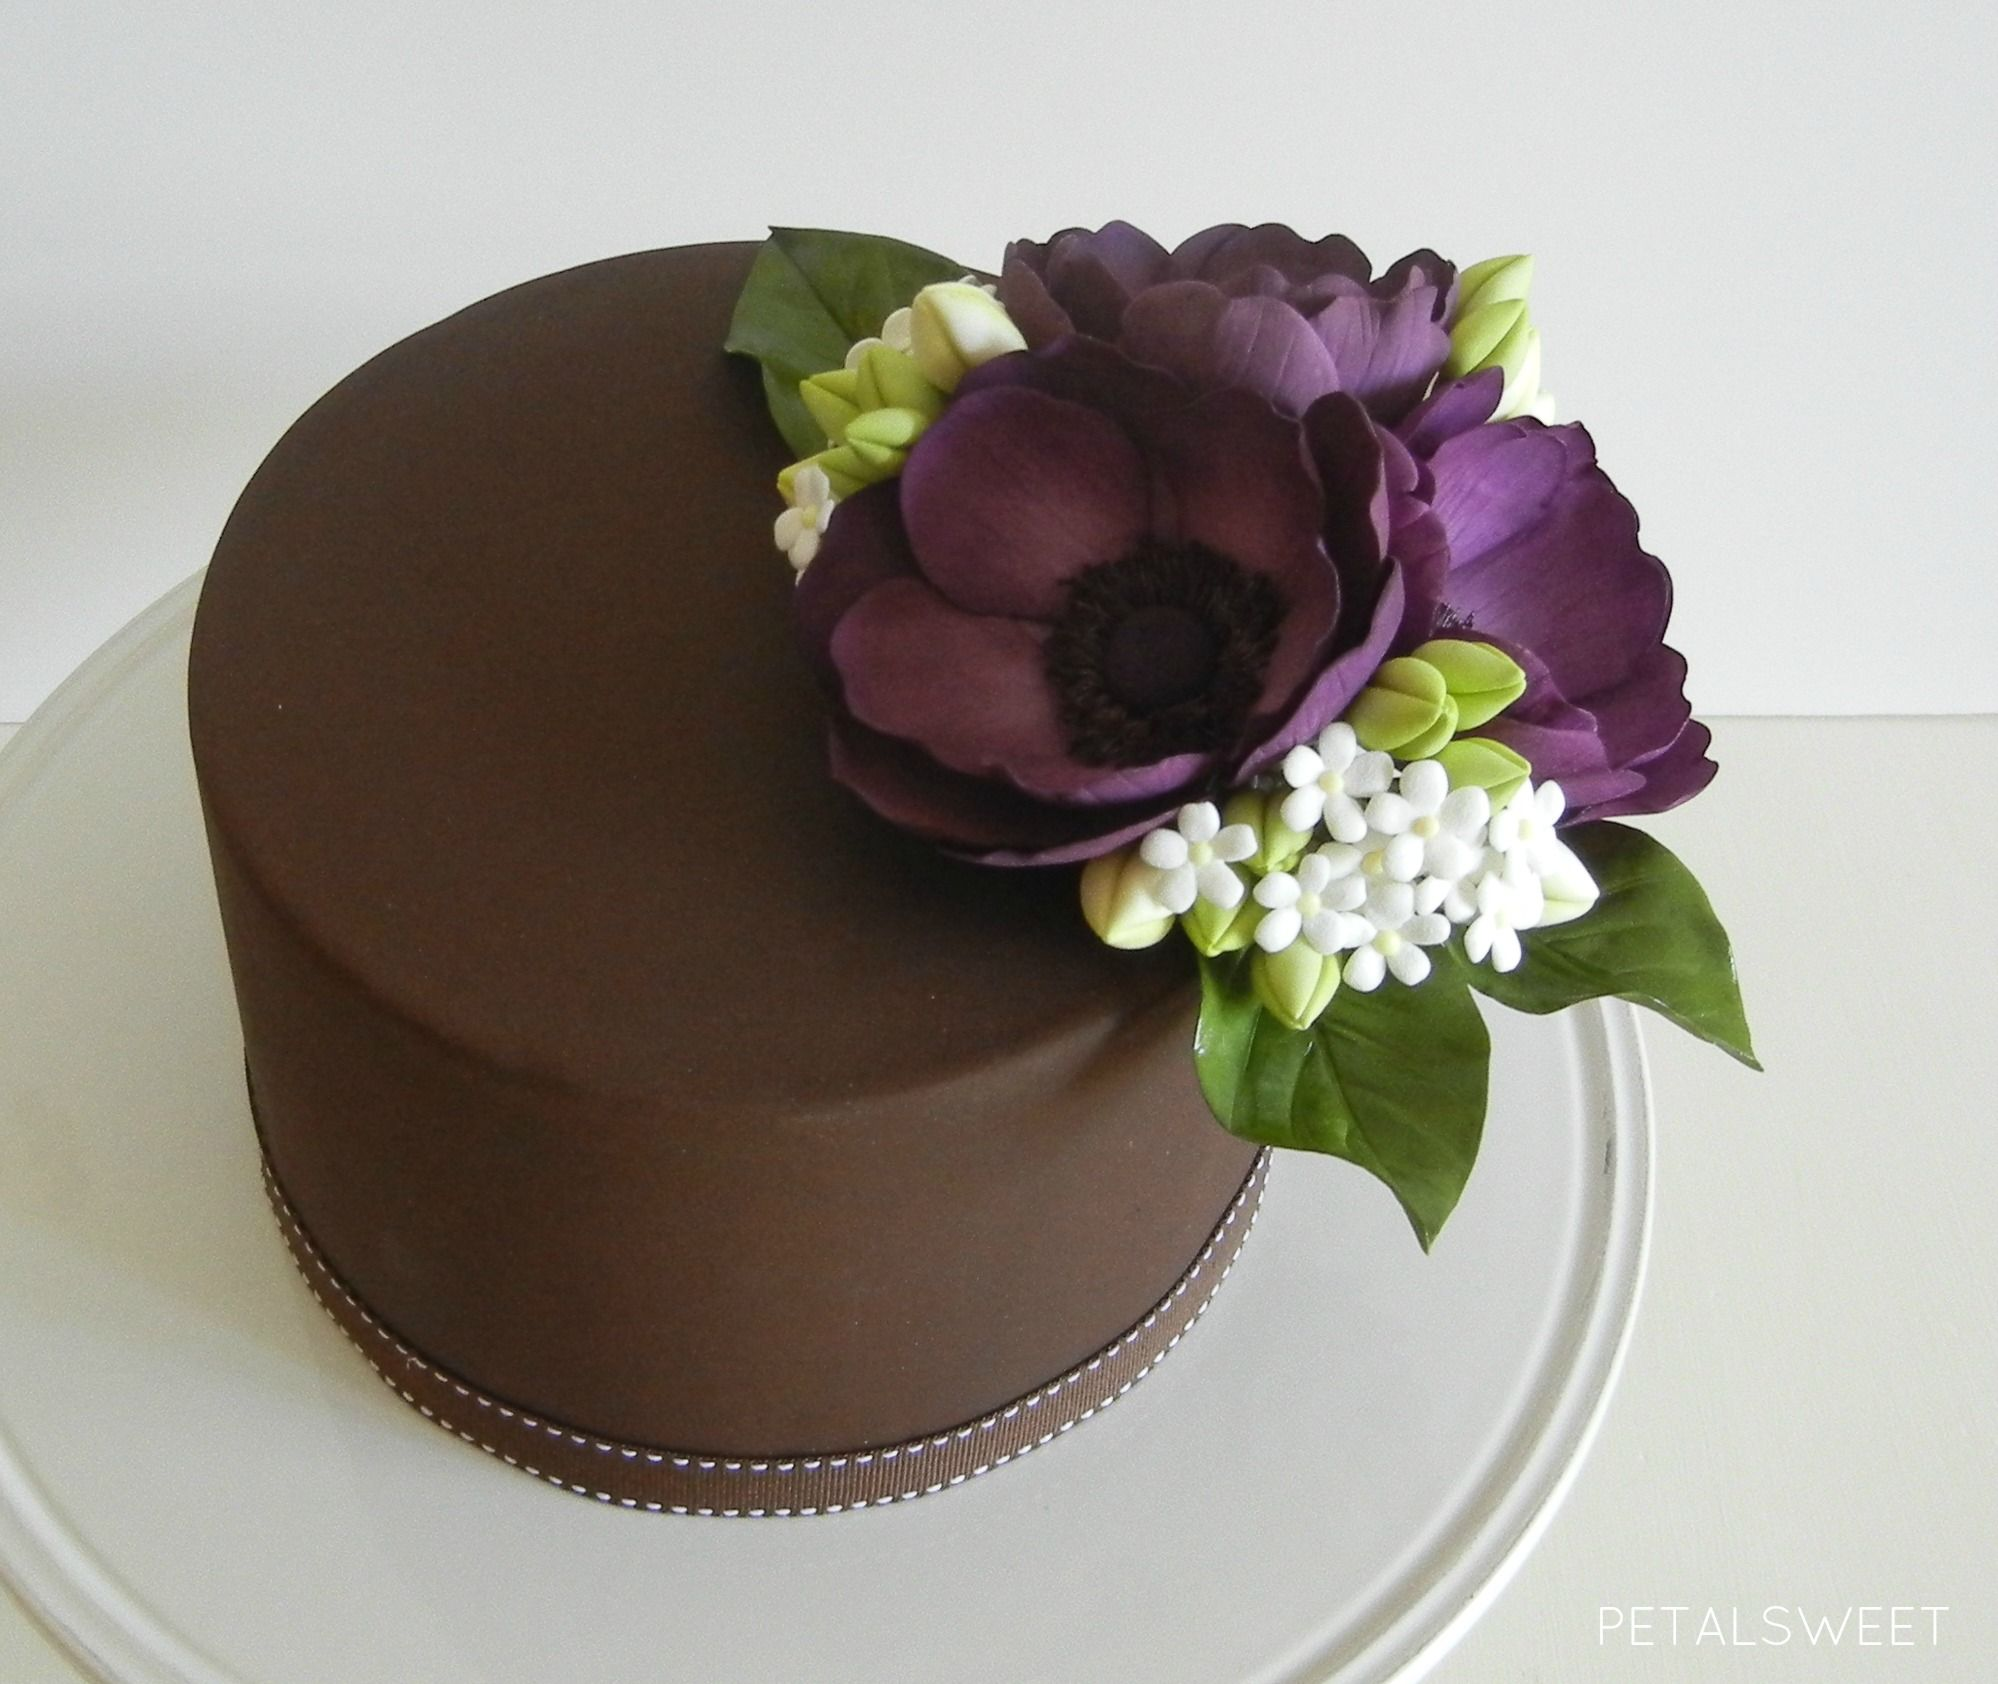 45 Wedding Cakes With Sugar Flowers That Look Stunningly: Purple Anemones With Our Hydrangea And Filler Flowers. One